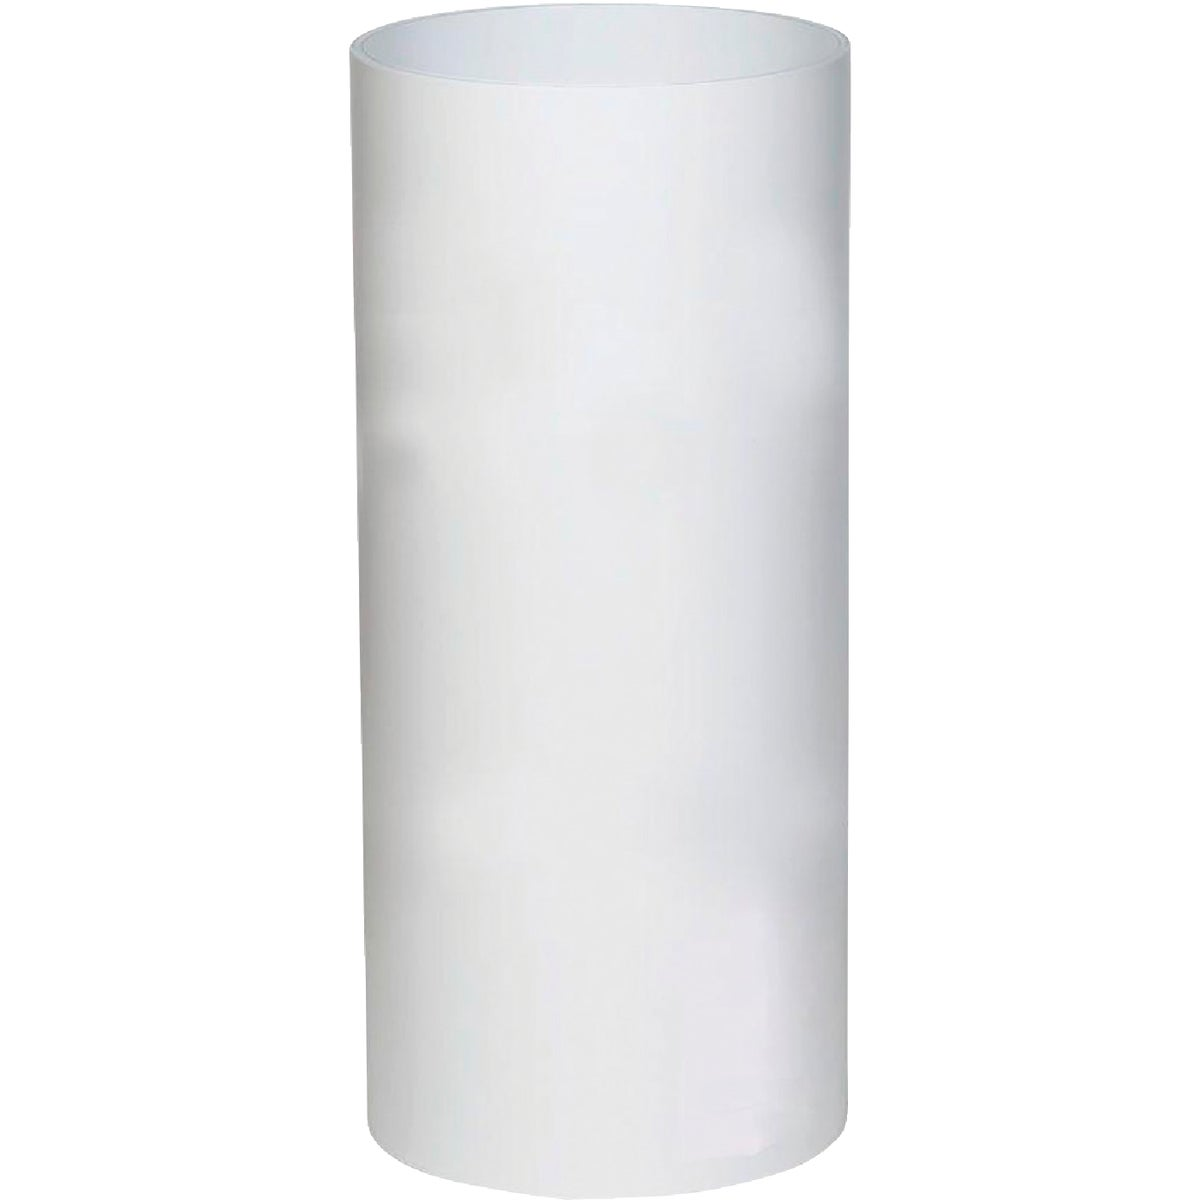 24X50 WHITE TRIM COIL - 69124182 by Amerimax Home Prod